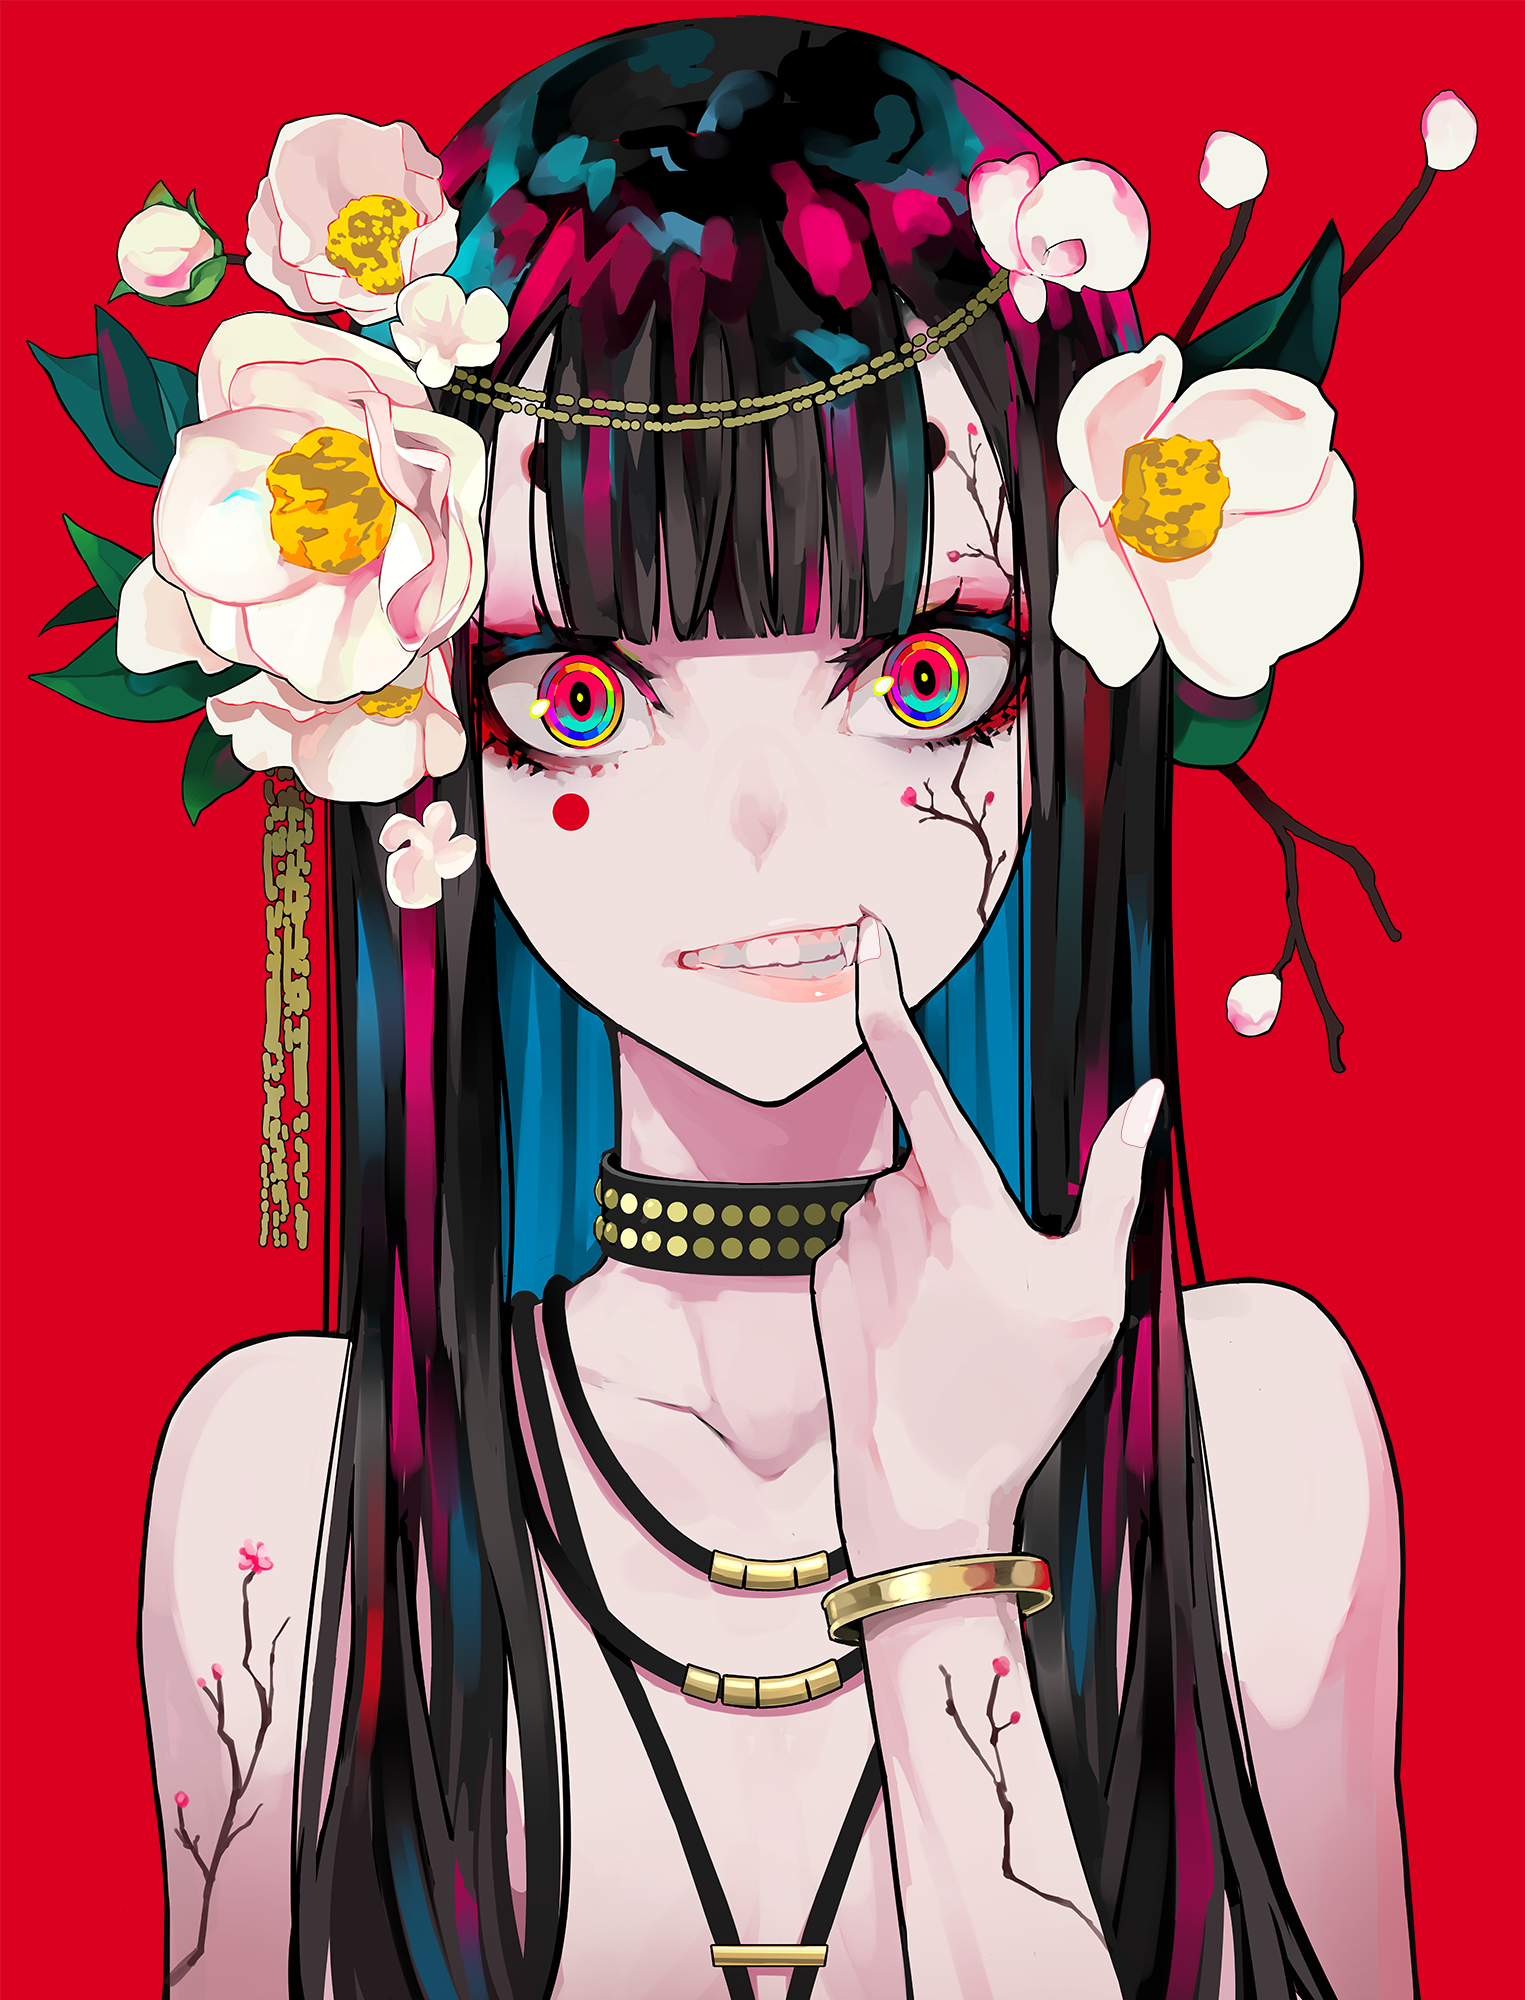 Anime 1525x2000 portrait display artwork digital art 2D looking at viewer fangs flower in hair necklace long hair painting illustration original characters drawing anime girls red background face flowers dark hair colorful bracelets LAM anime simple background